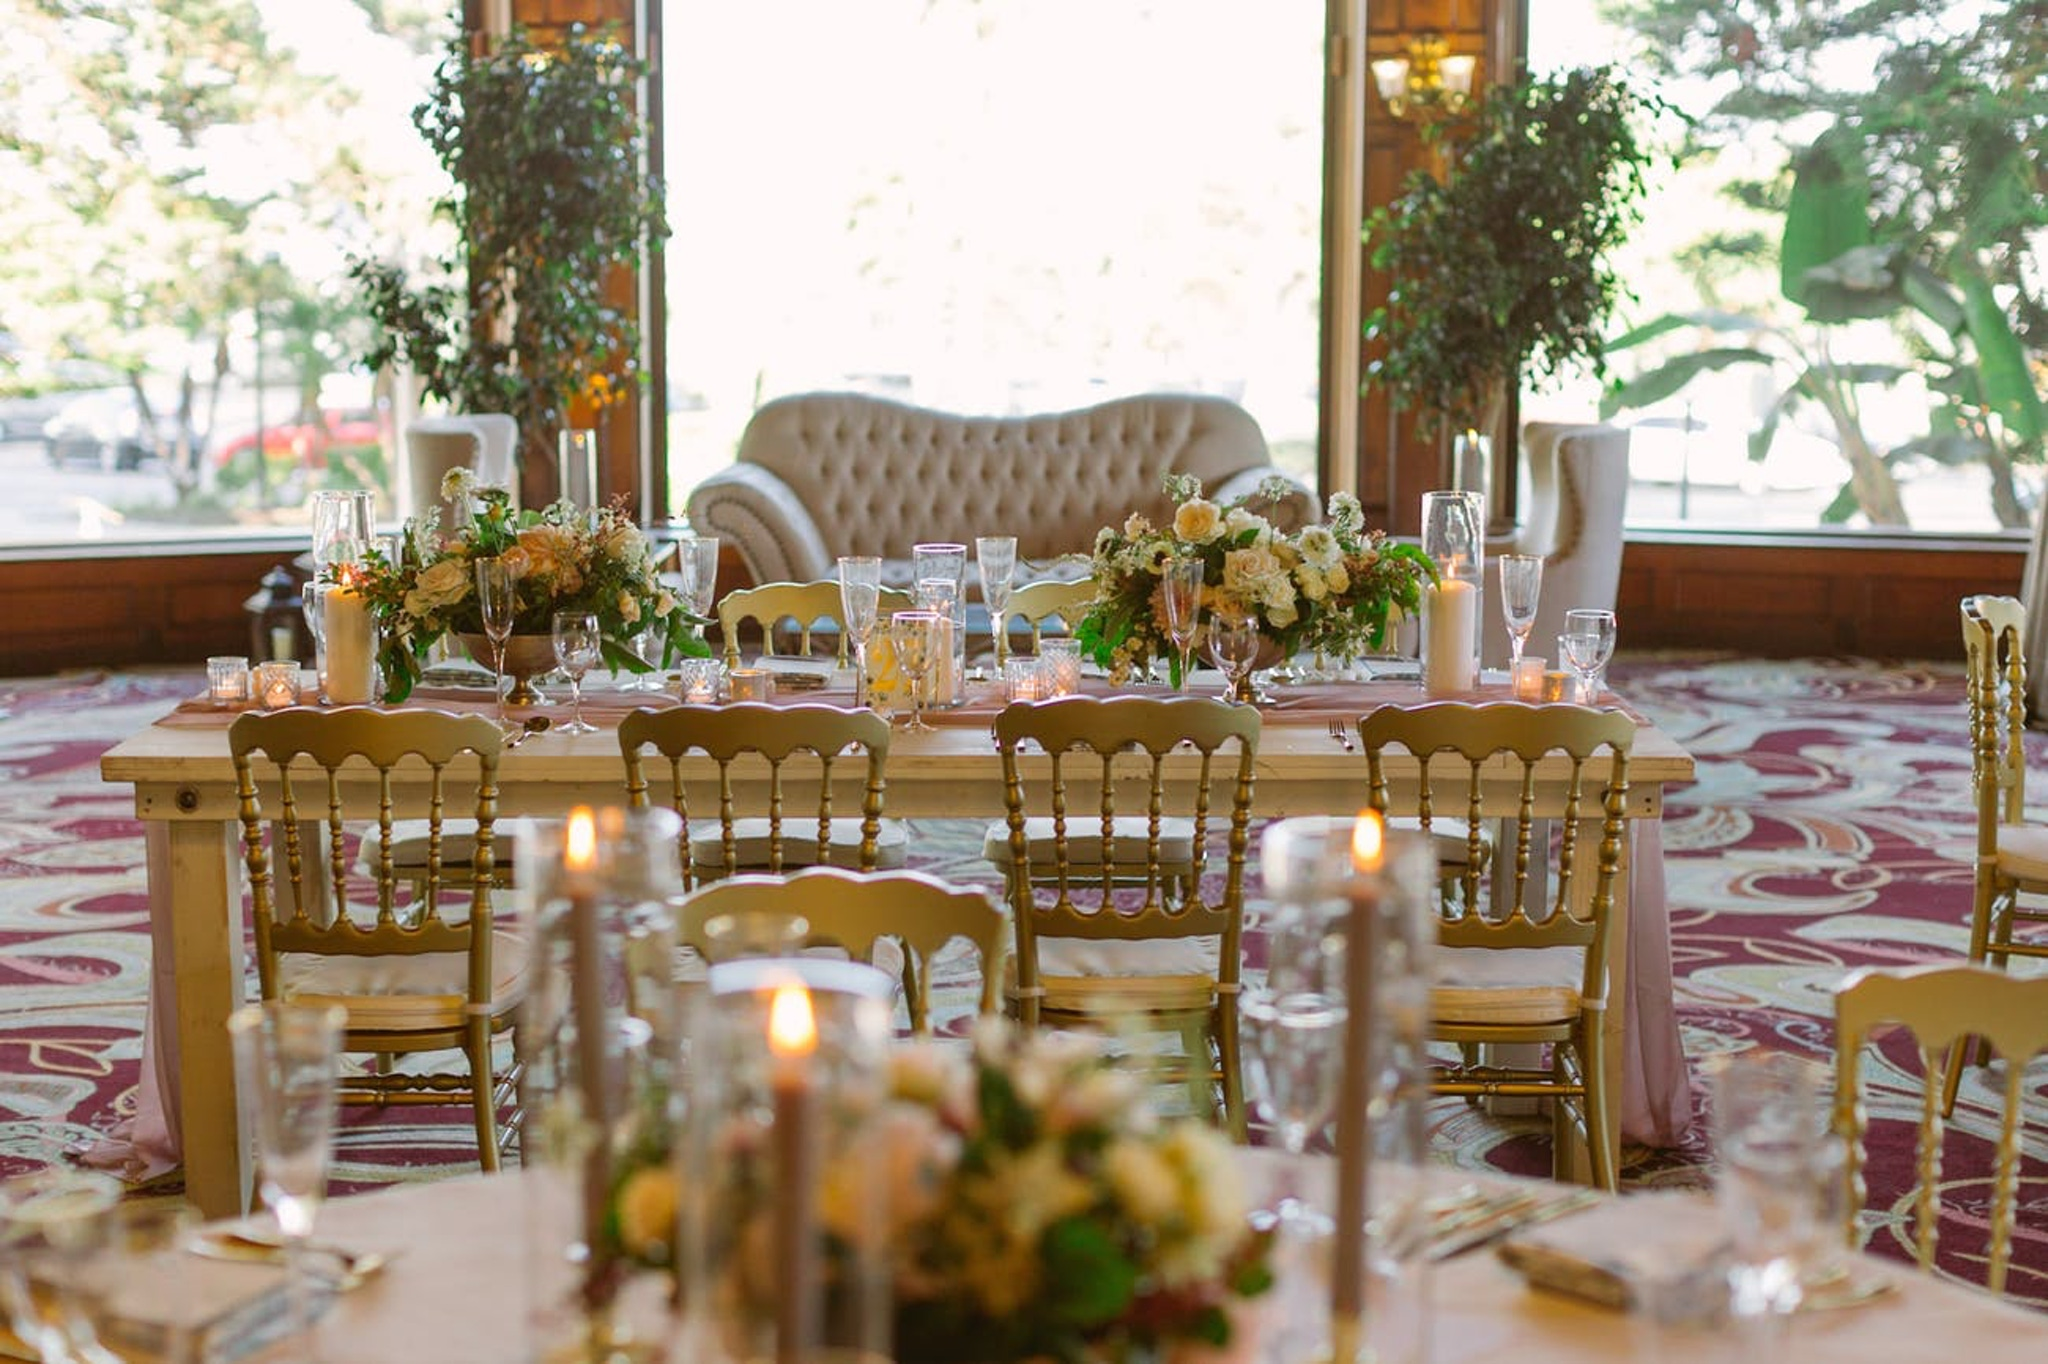 fall wedding reception with neutral tones, couches and yellow floral centerpieces